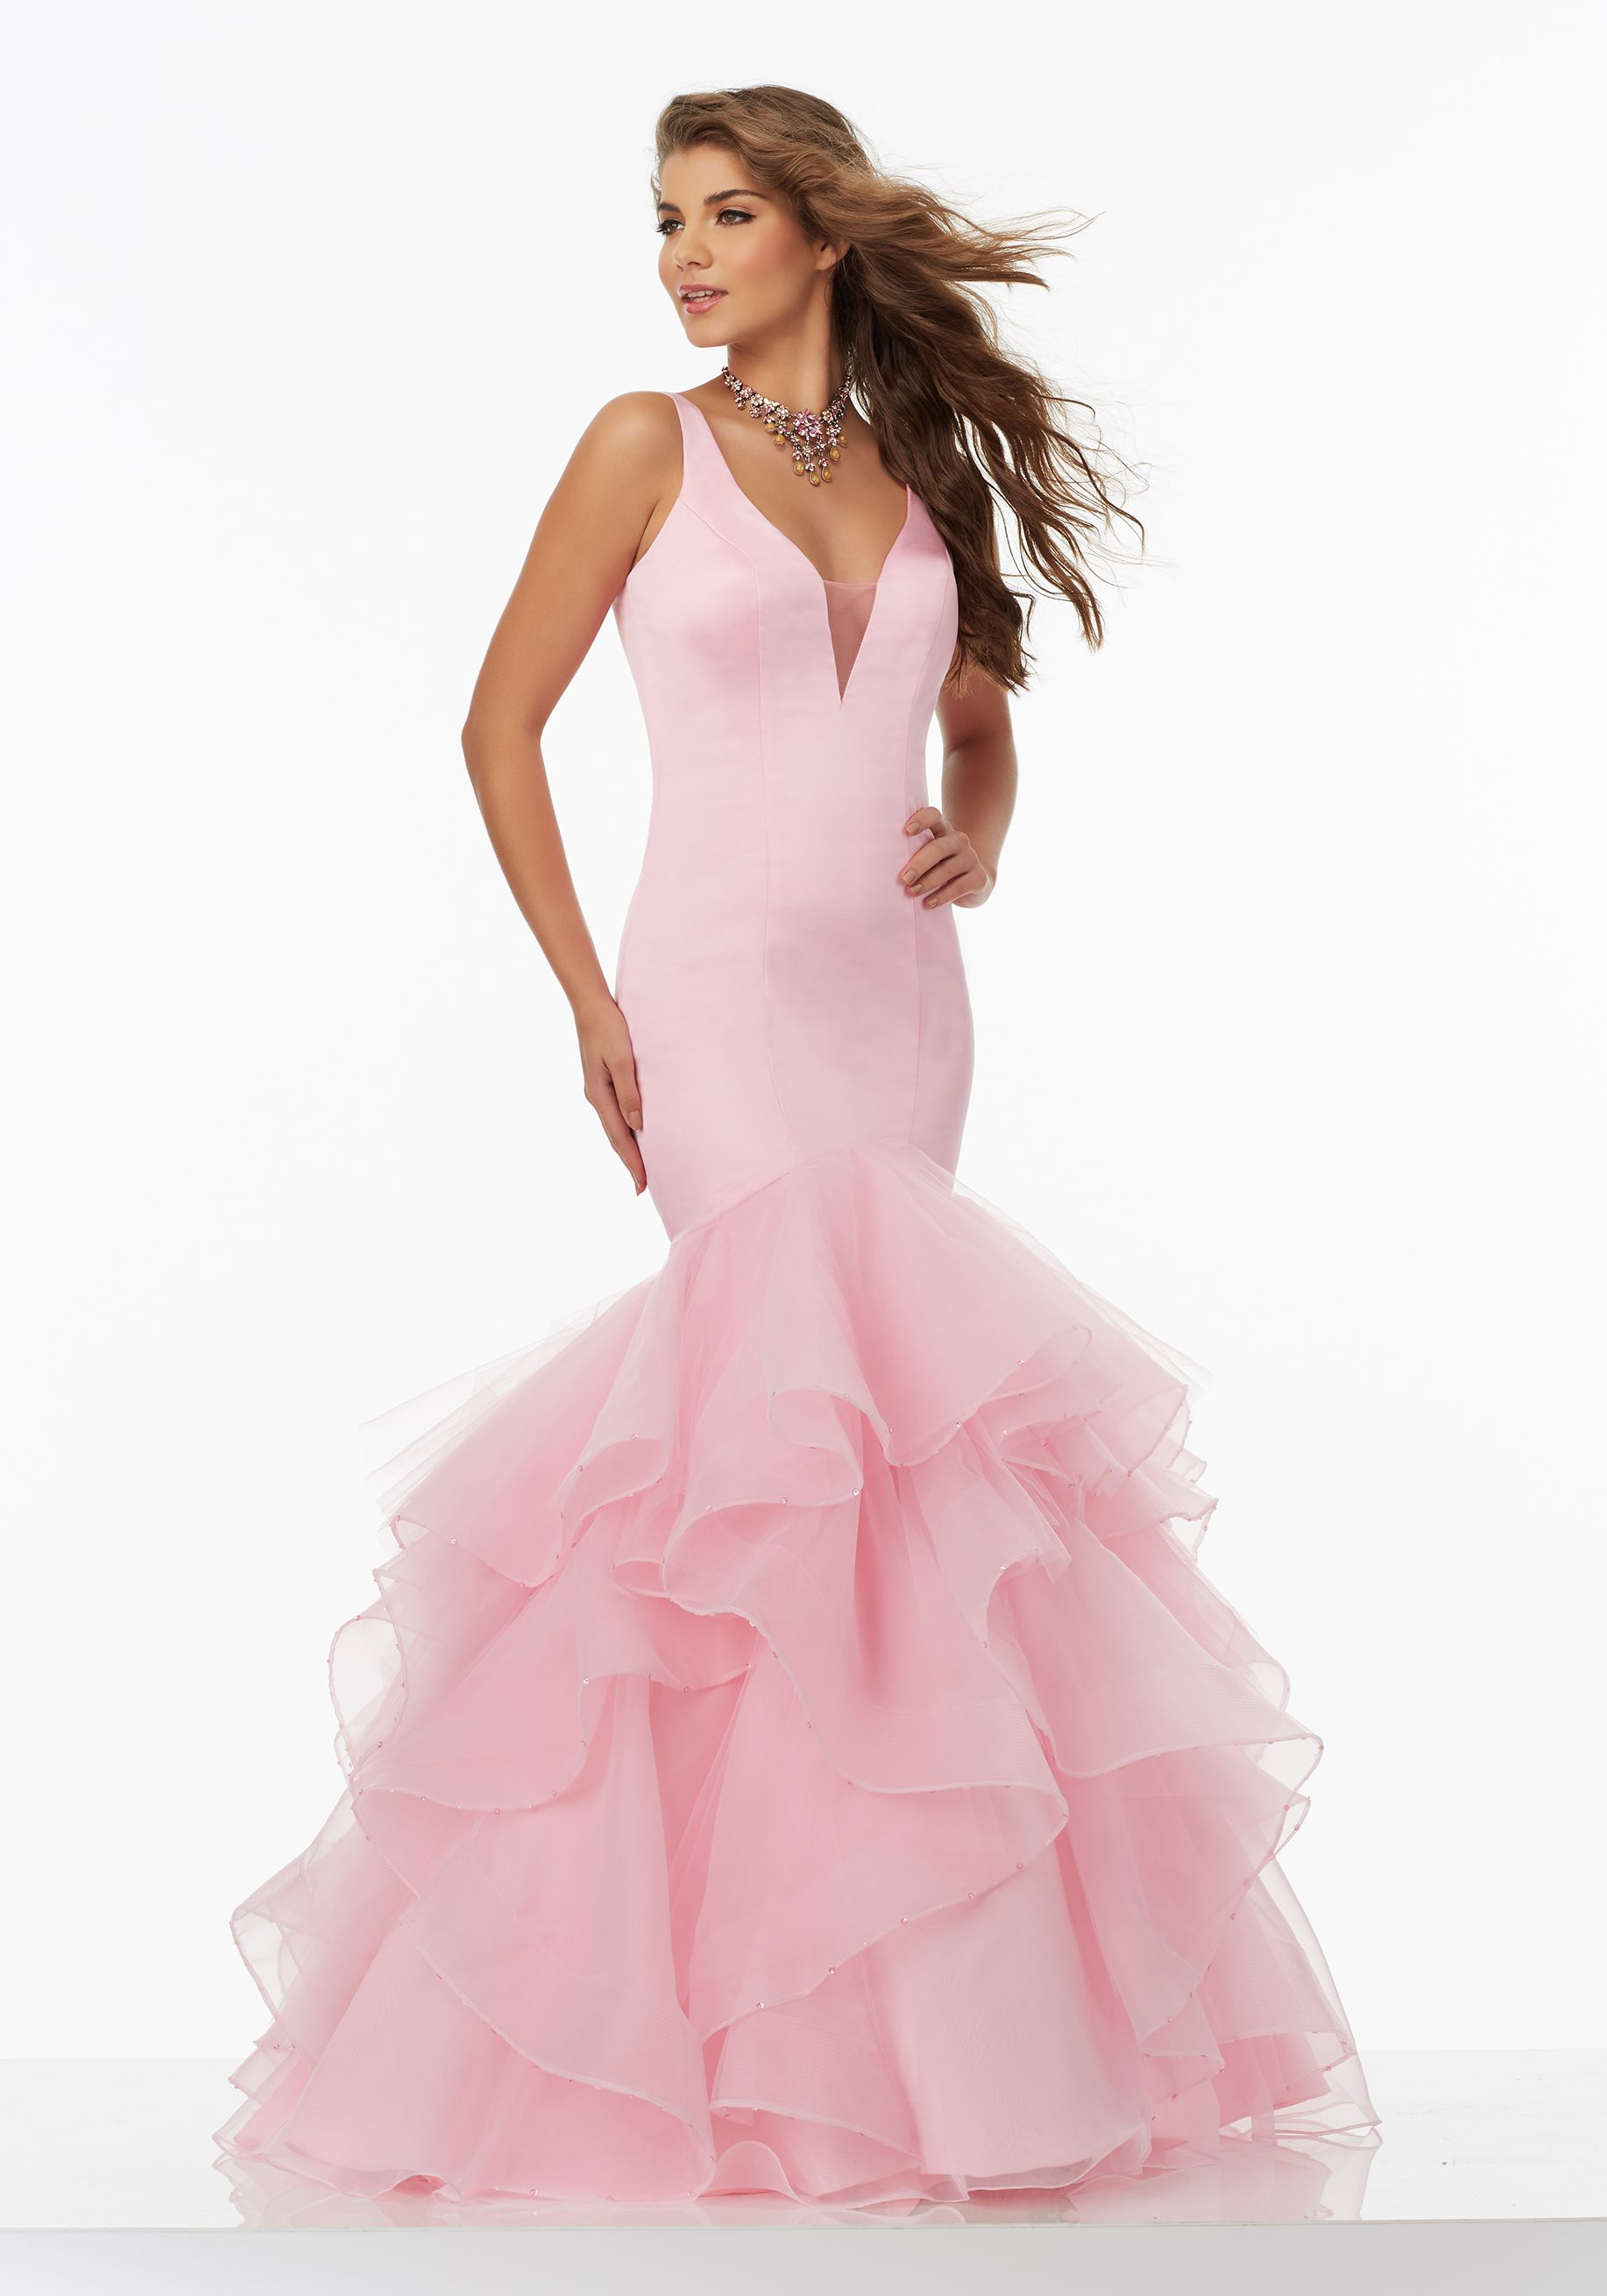 Prom Dress by Mori Lee Available at Bridal and Formal\'s Club Dress ...